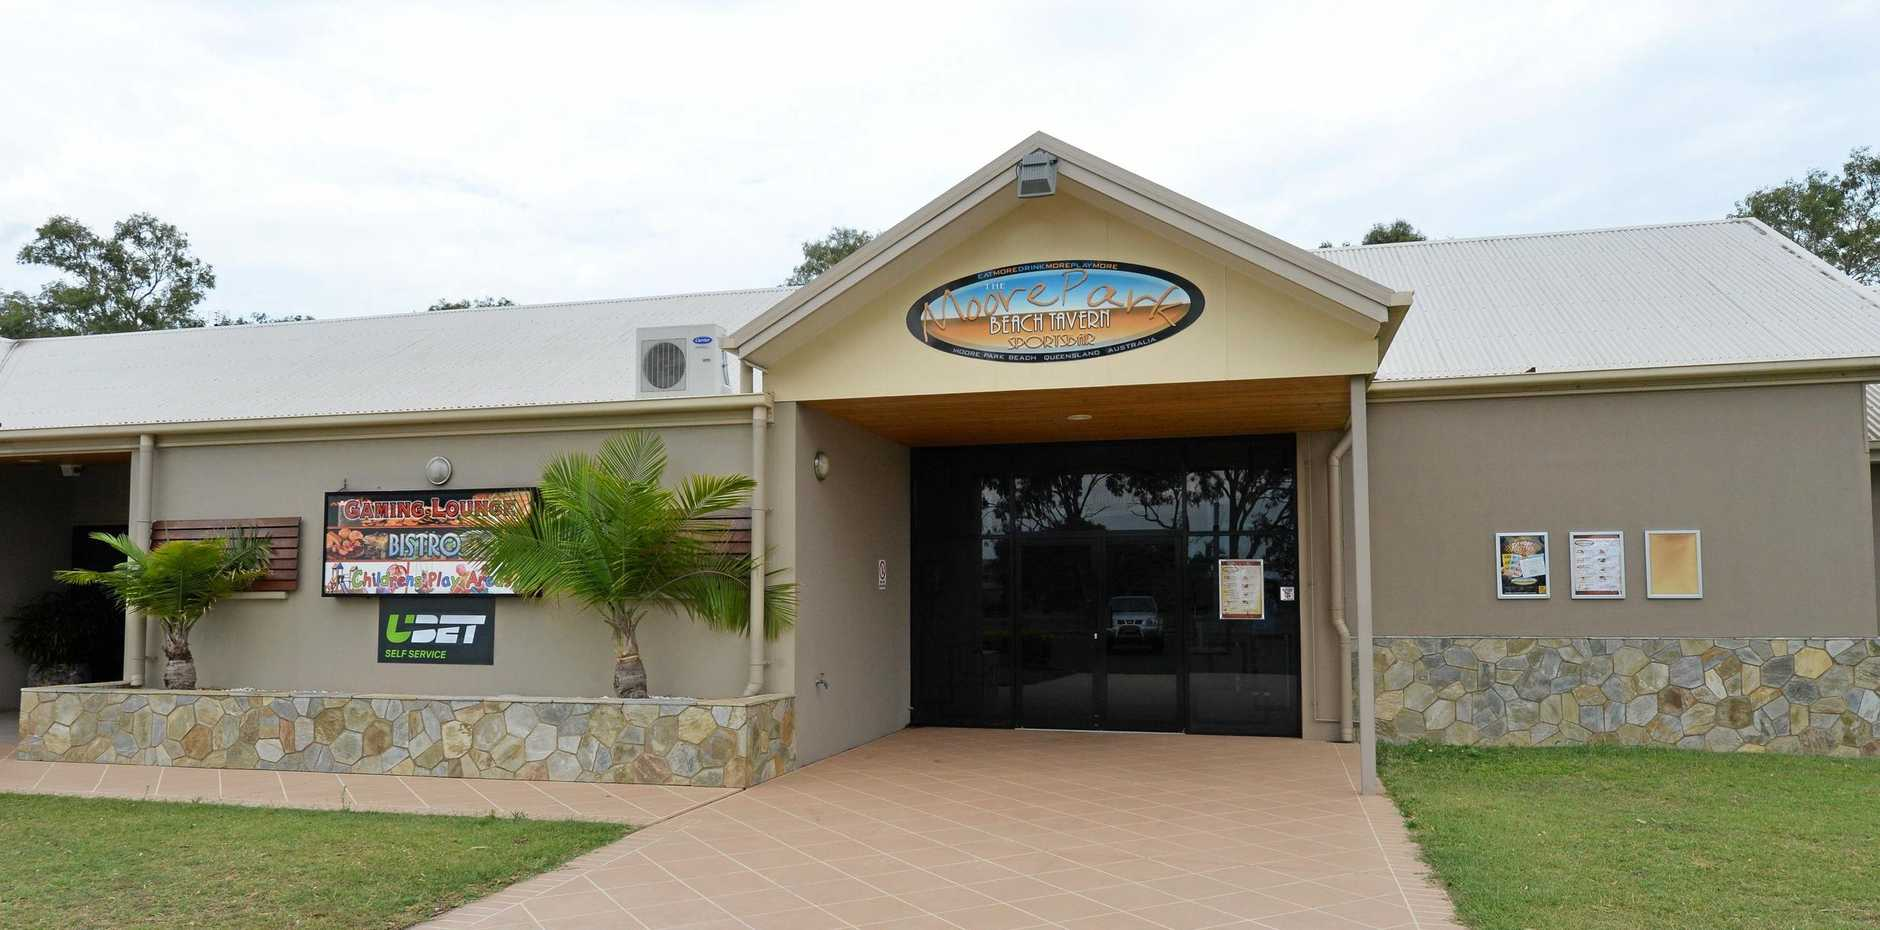 GRAFFITI: Police are investigating after the Moore Park Beach Tavern was graffitied.